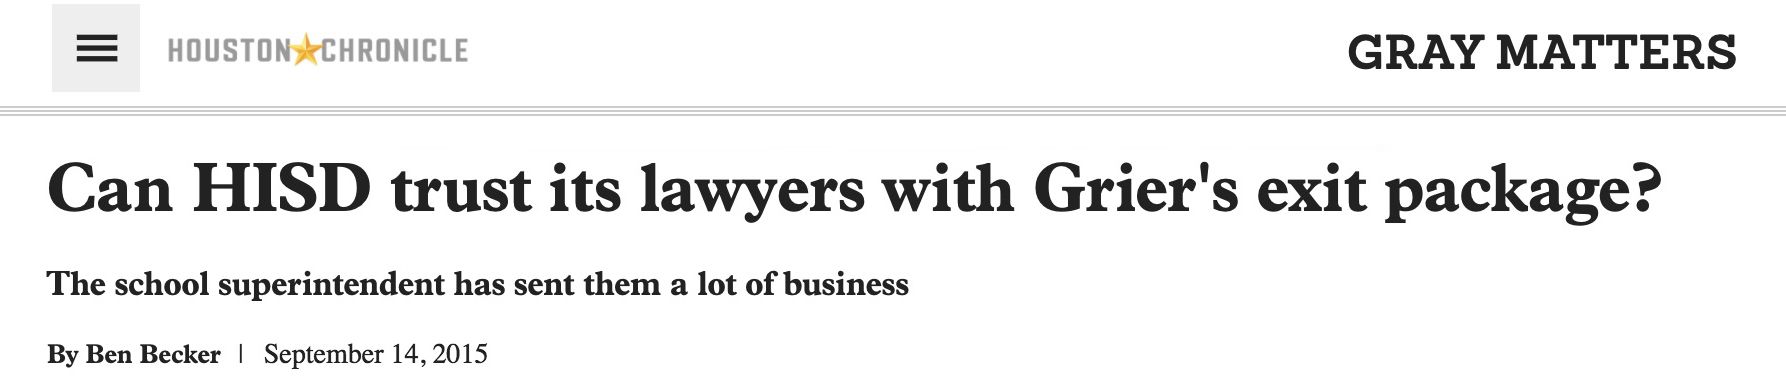 Can_HISD_trust_its_lawyers_with_Grier_s_exit_package__-_Houston_Chronicle copy.jpg